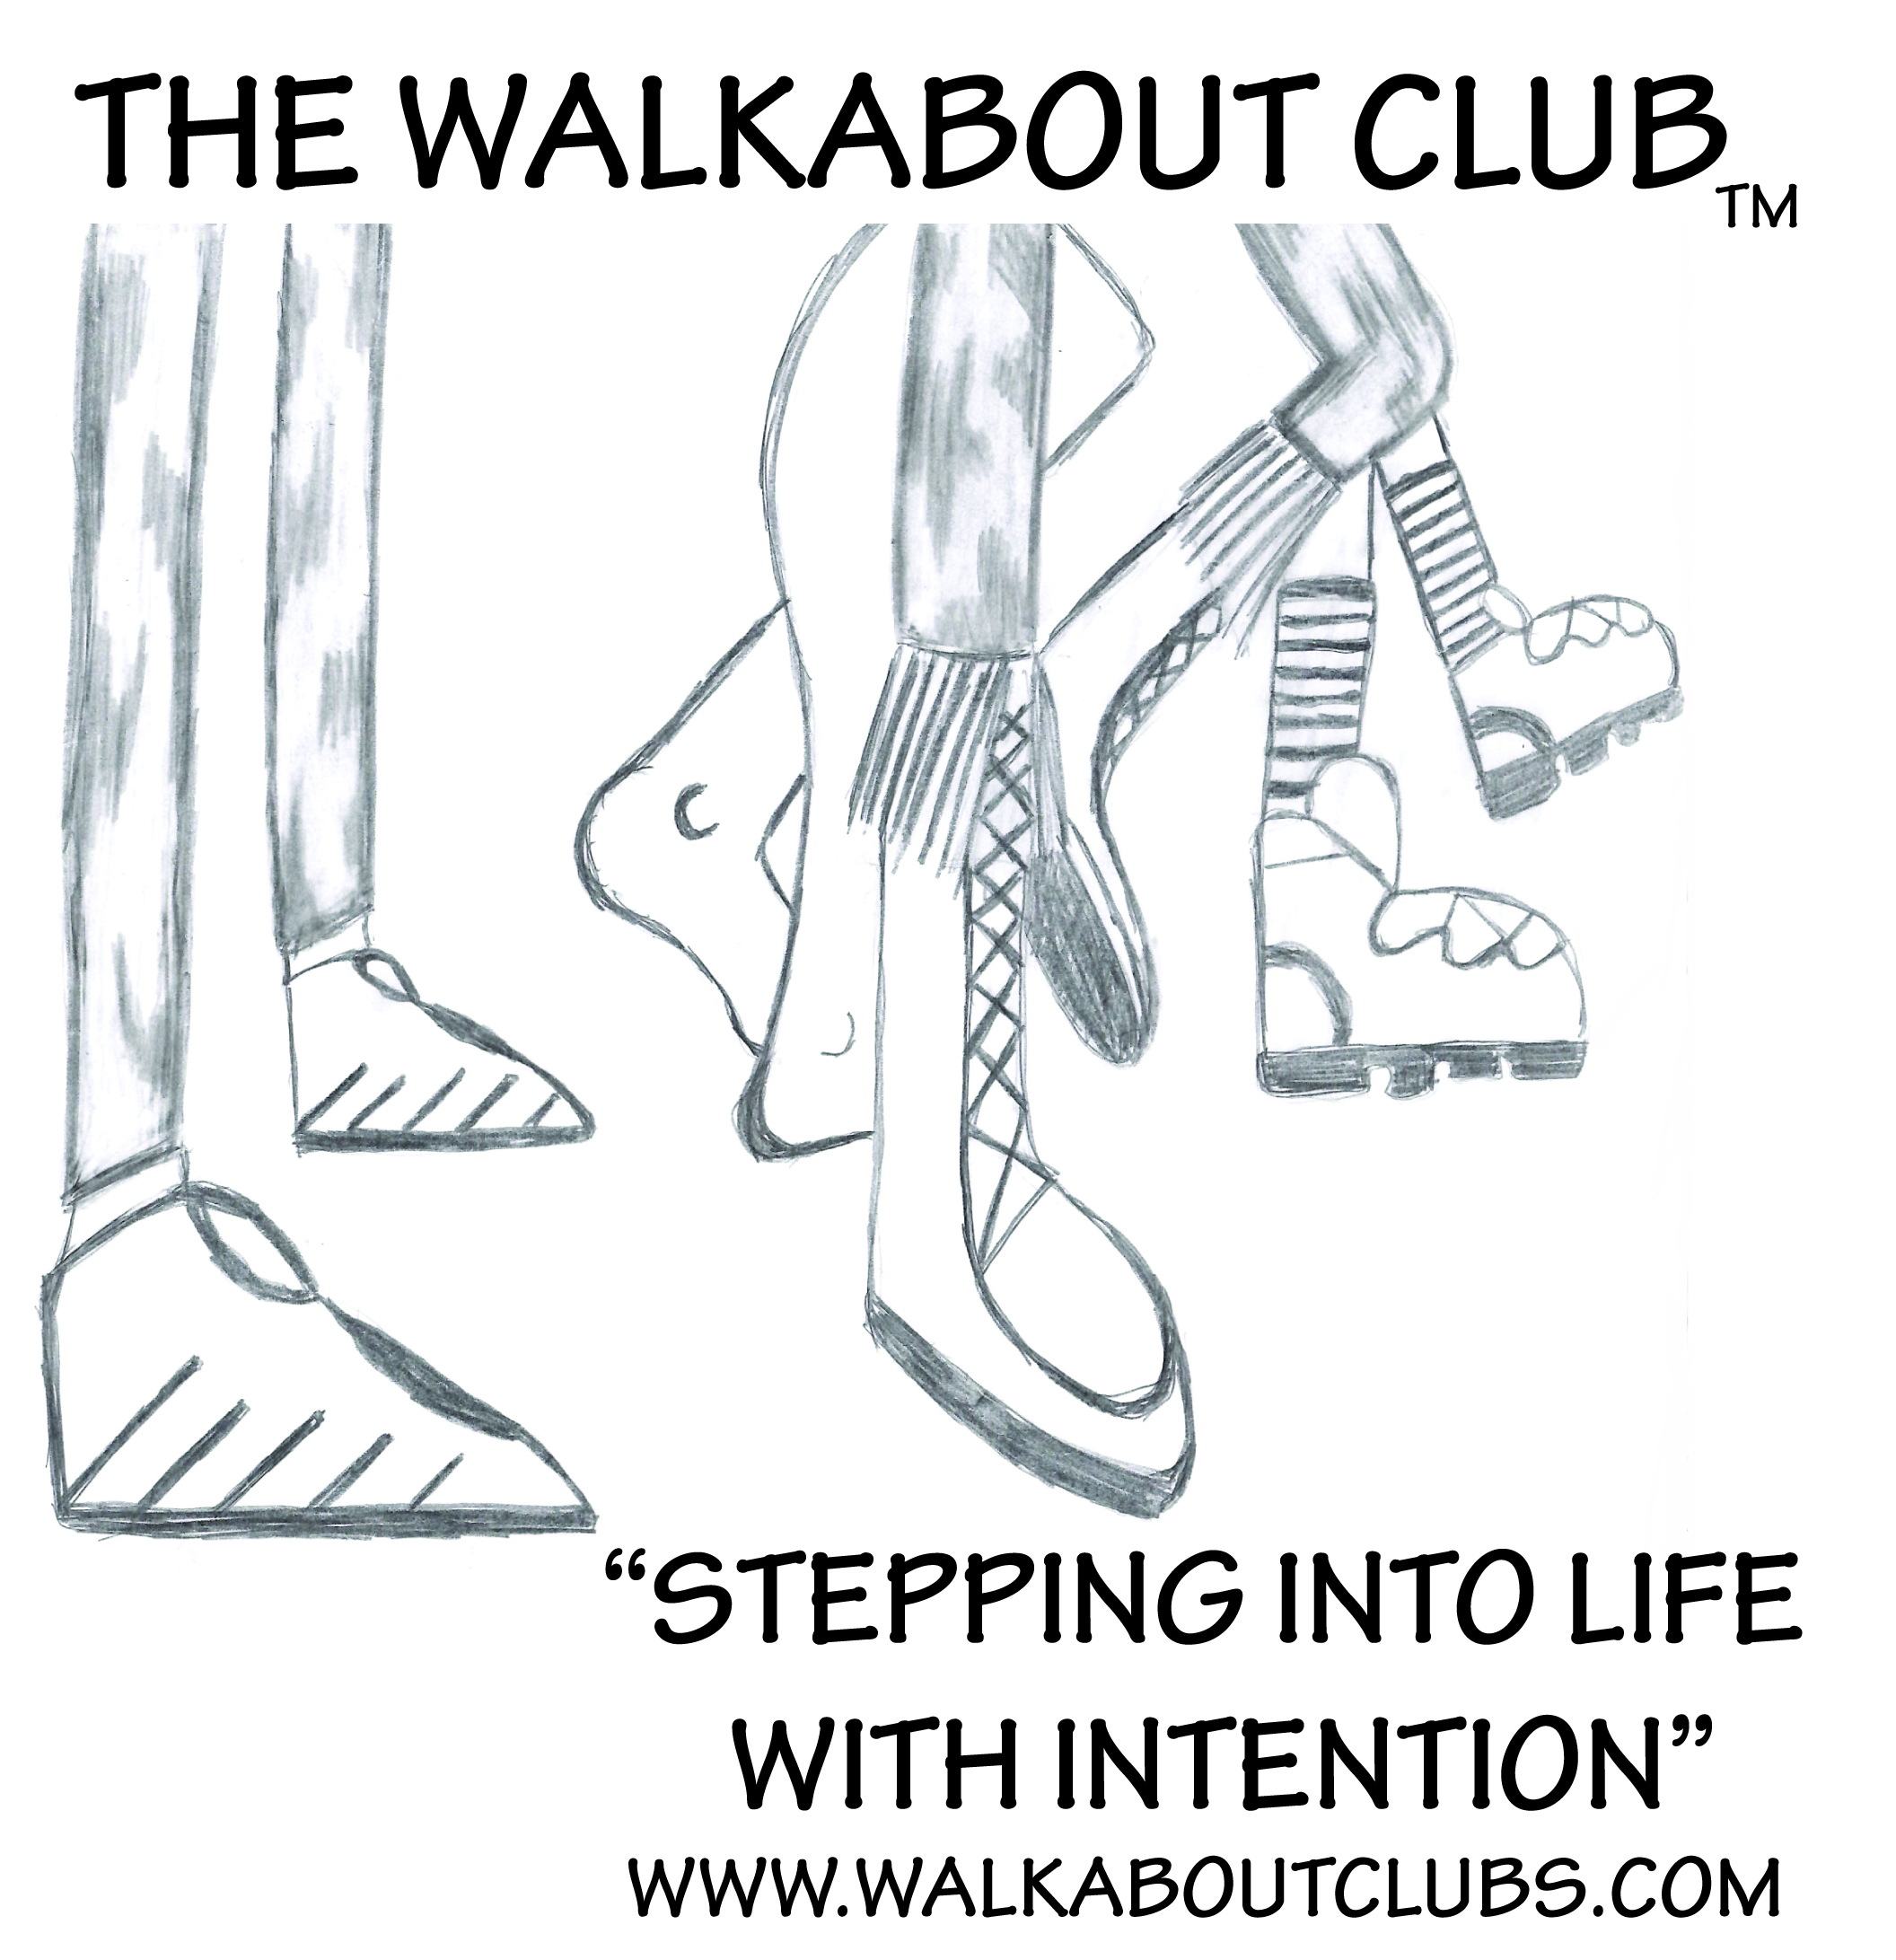 WALKABOUT LOGO IMAGE_TEXT CURRENT.jpg